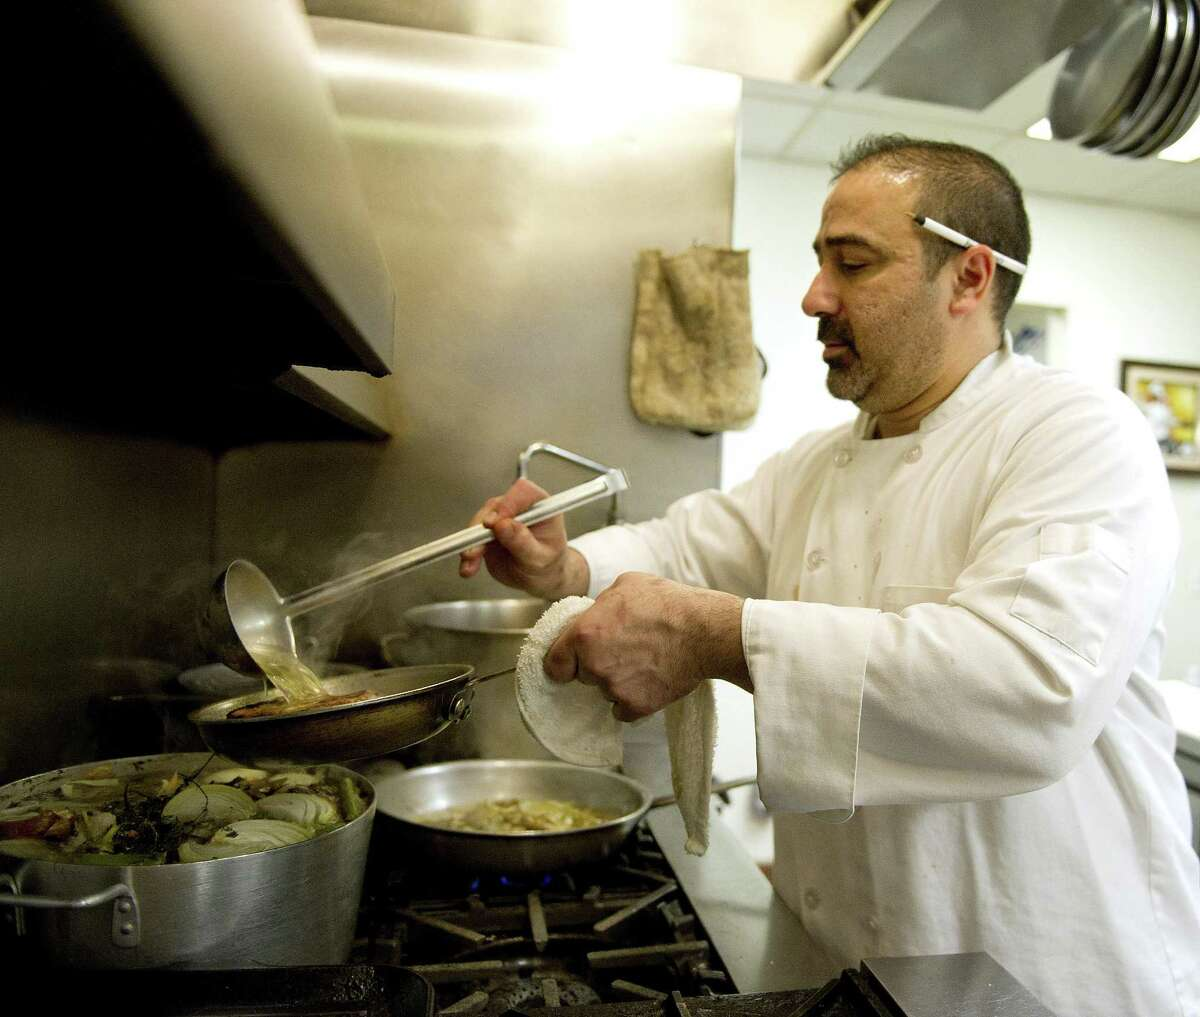 Stephen Costanzo, co-owner and head chef at Olio in Stamford, cooks in the kitchen.